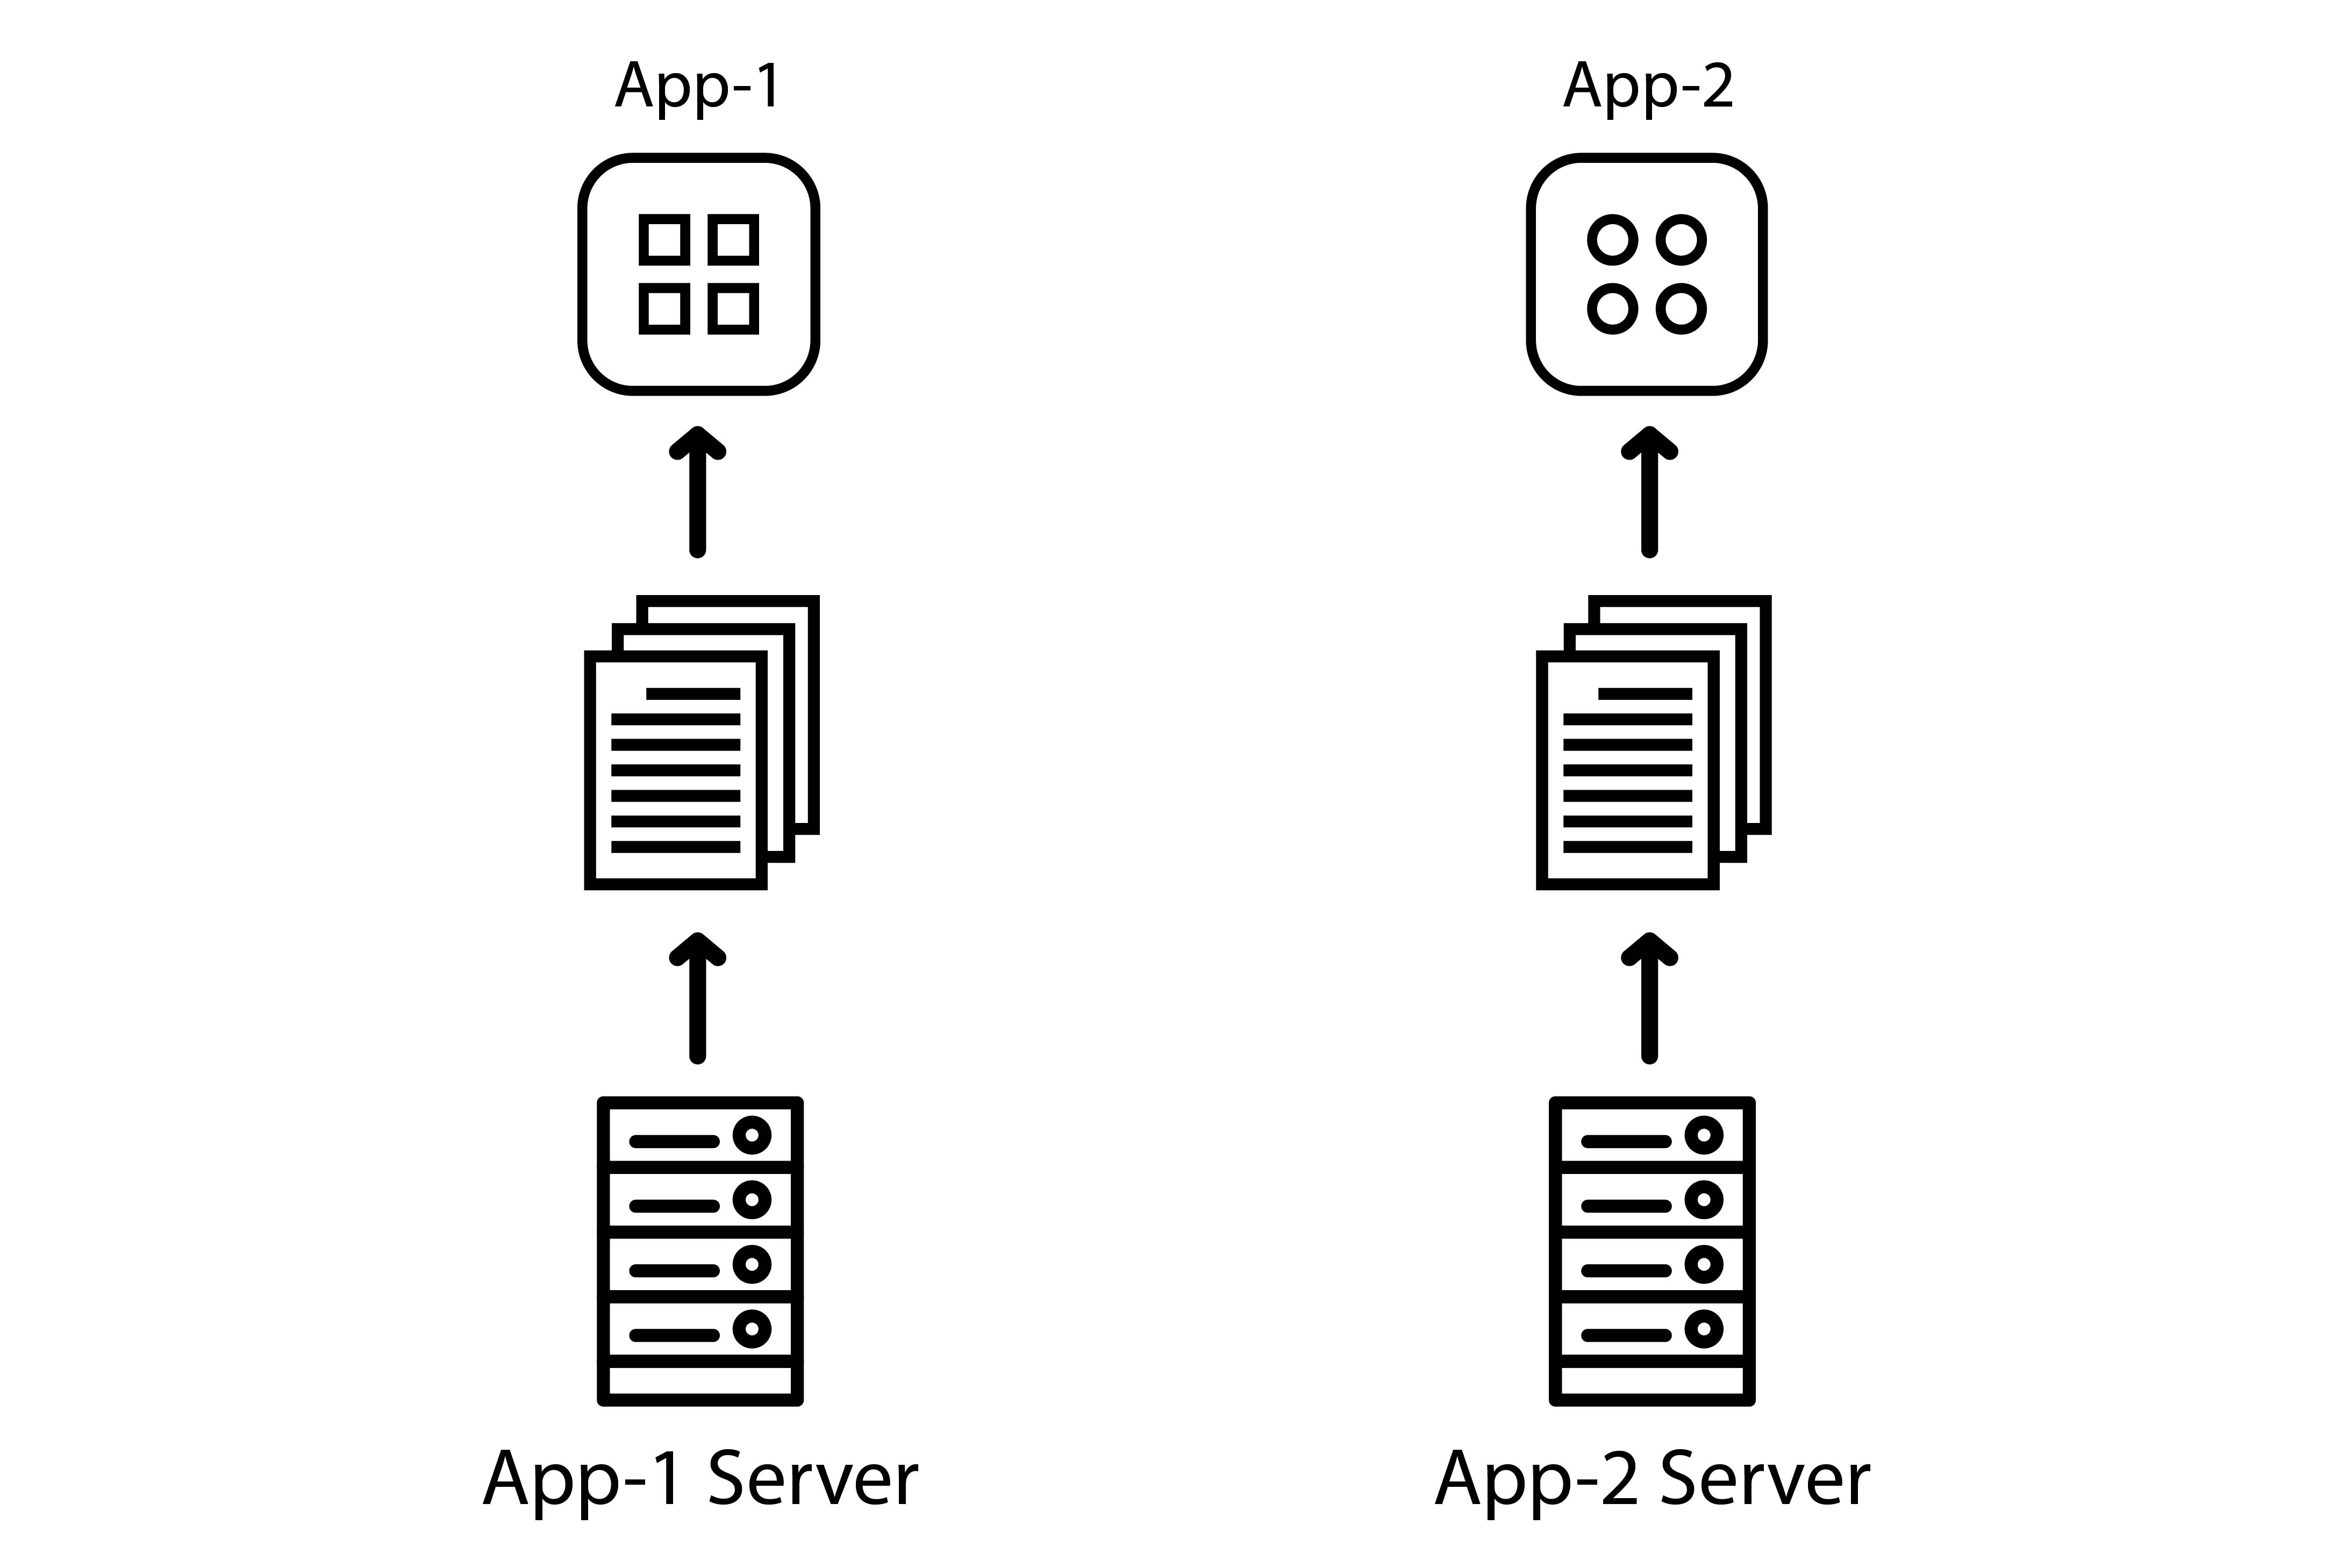 Both apps have their own local server